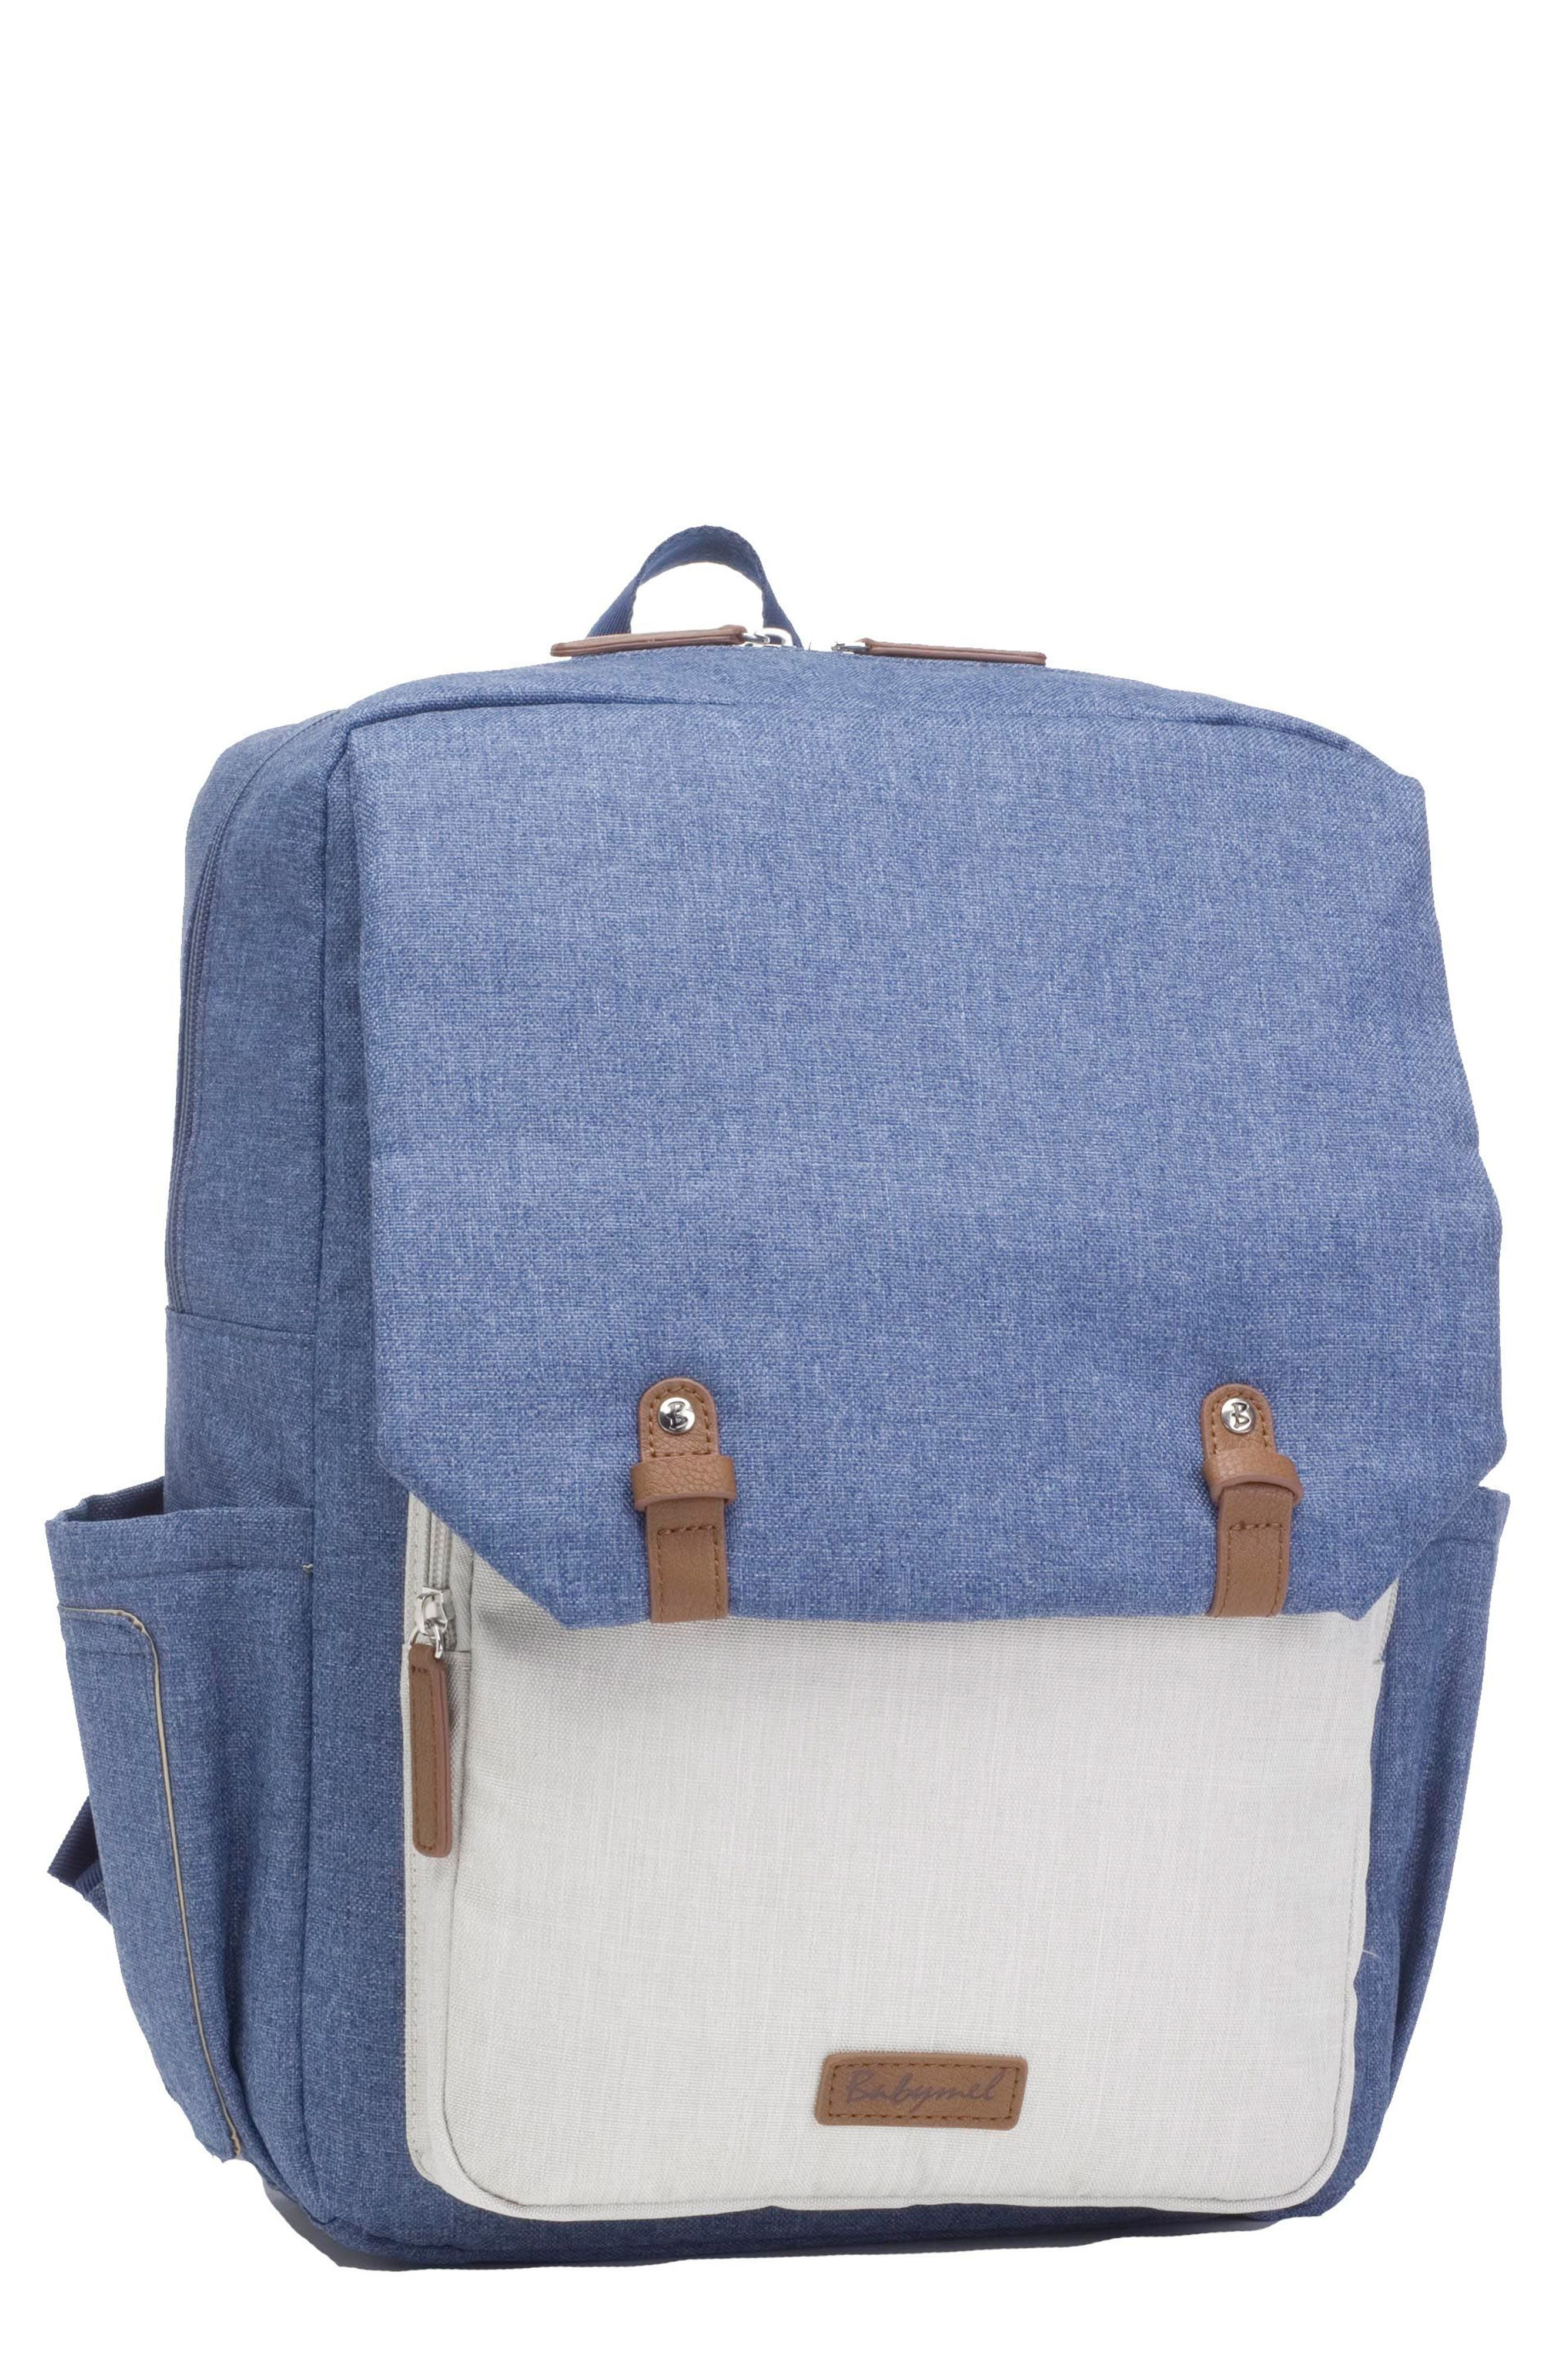 George Water Resistant Diaper Backpack,                             Main thumbnail 1, color,                             Mid Blue/ Oatmeal